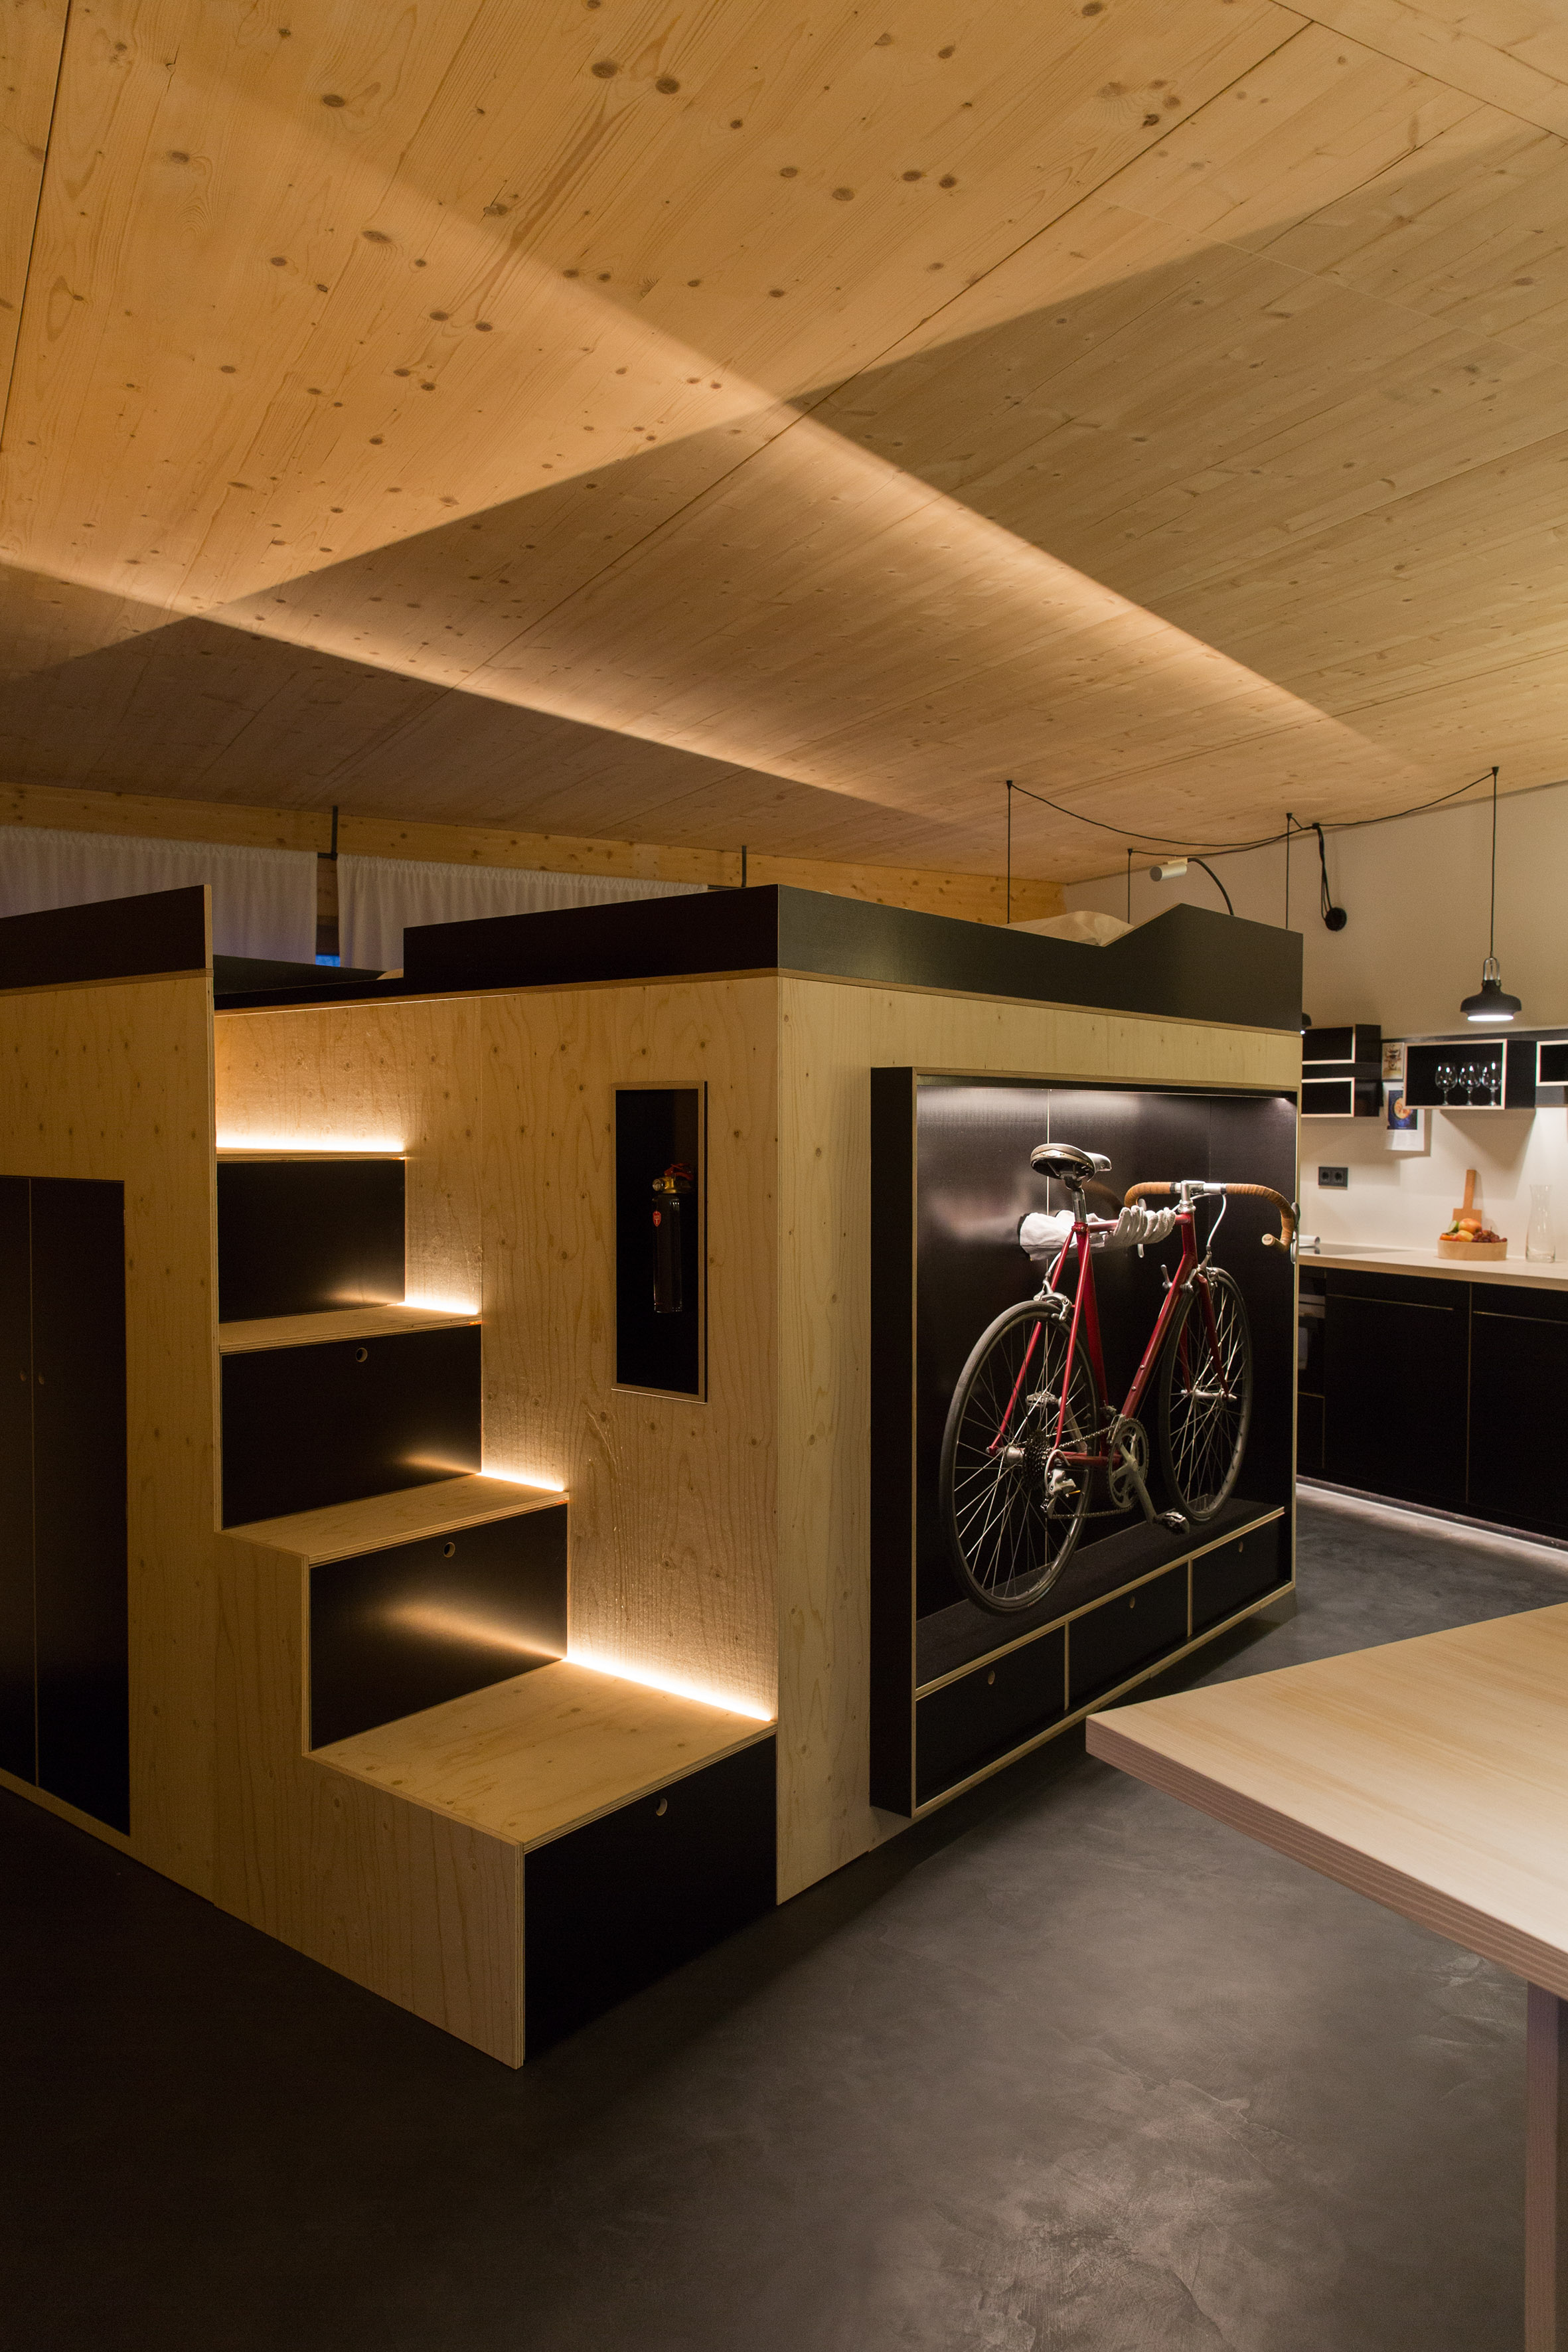 View of the Kammerspiel showing steps to bed and bike storage | © Julia Rotter